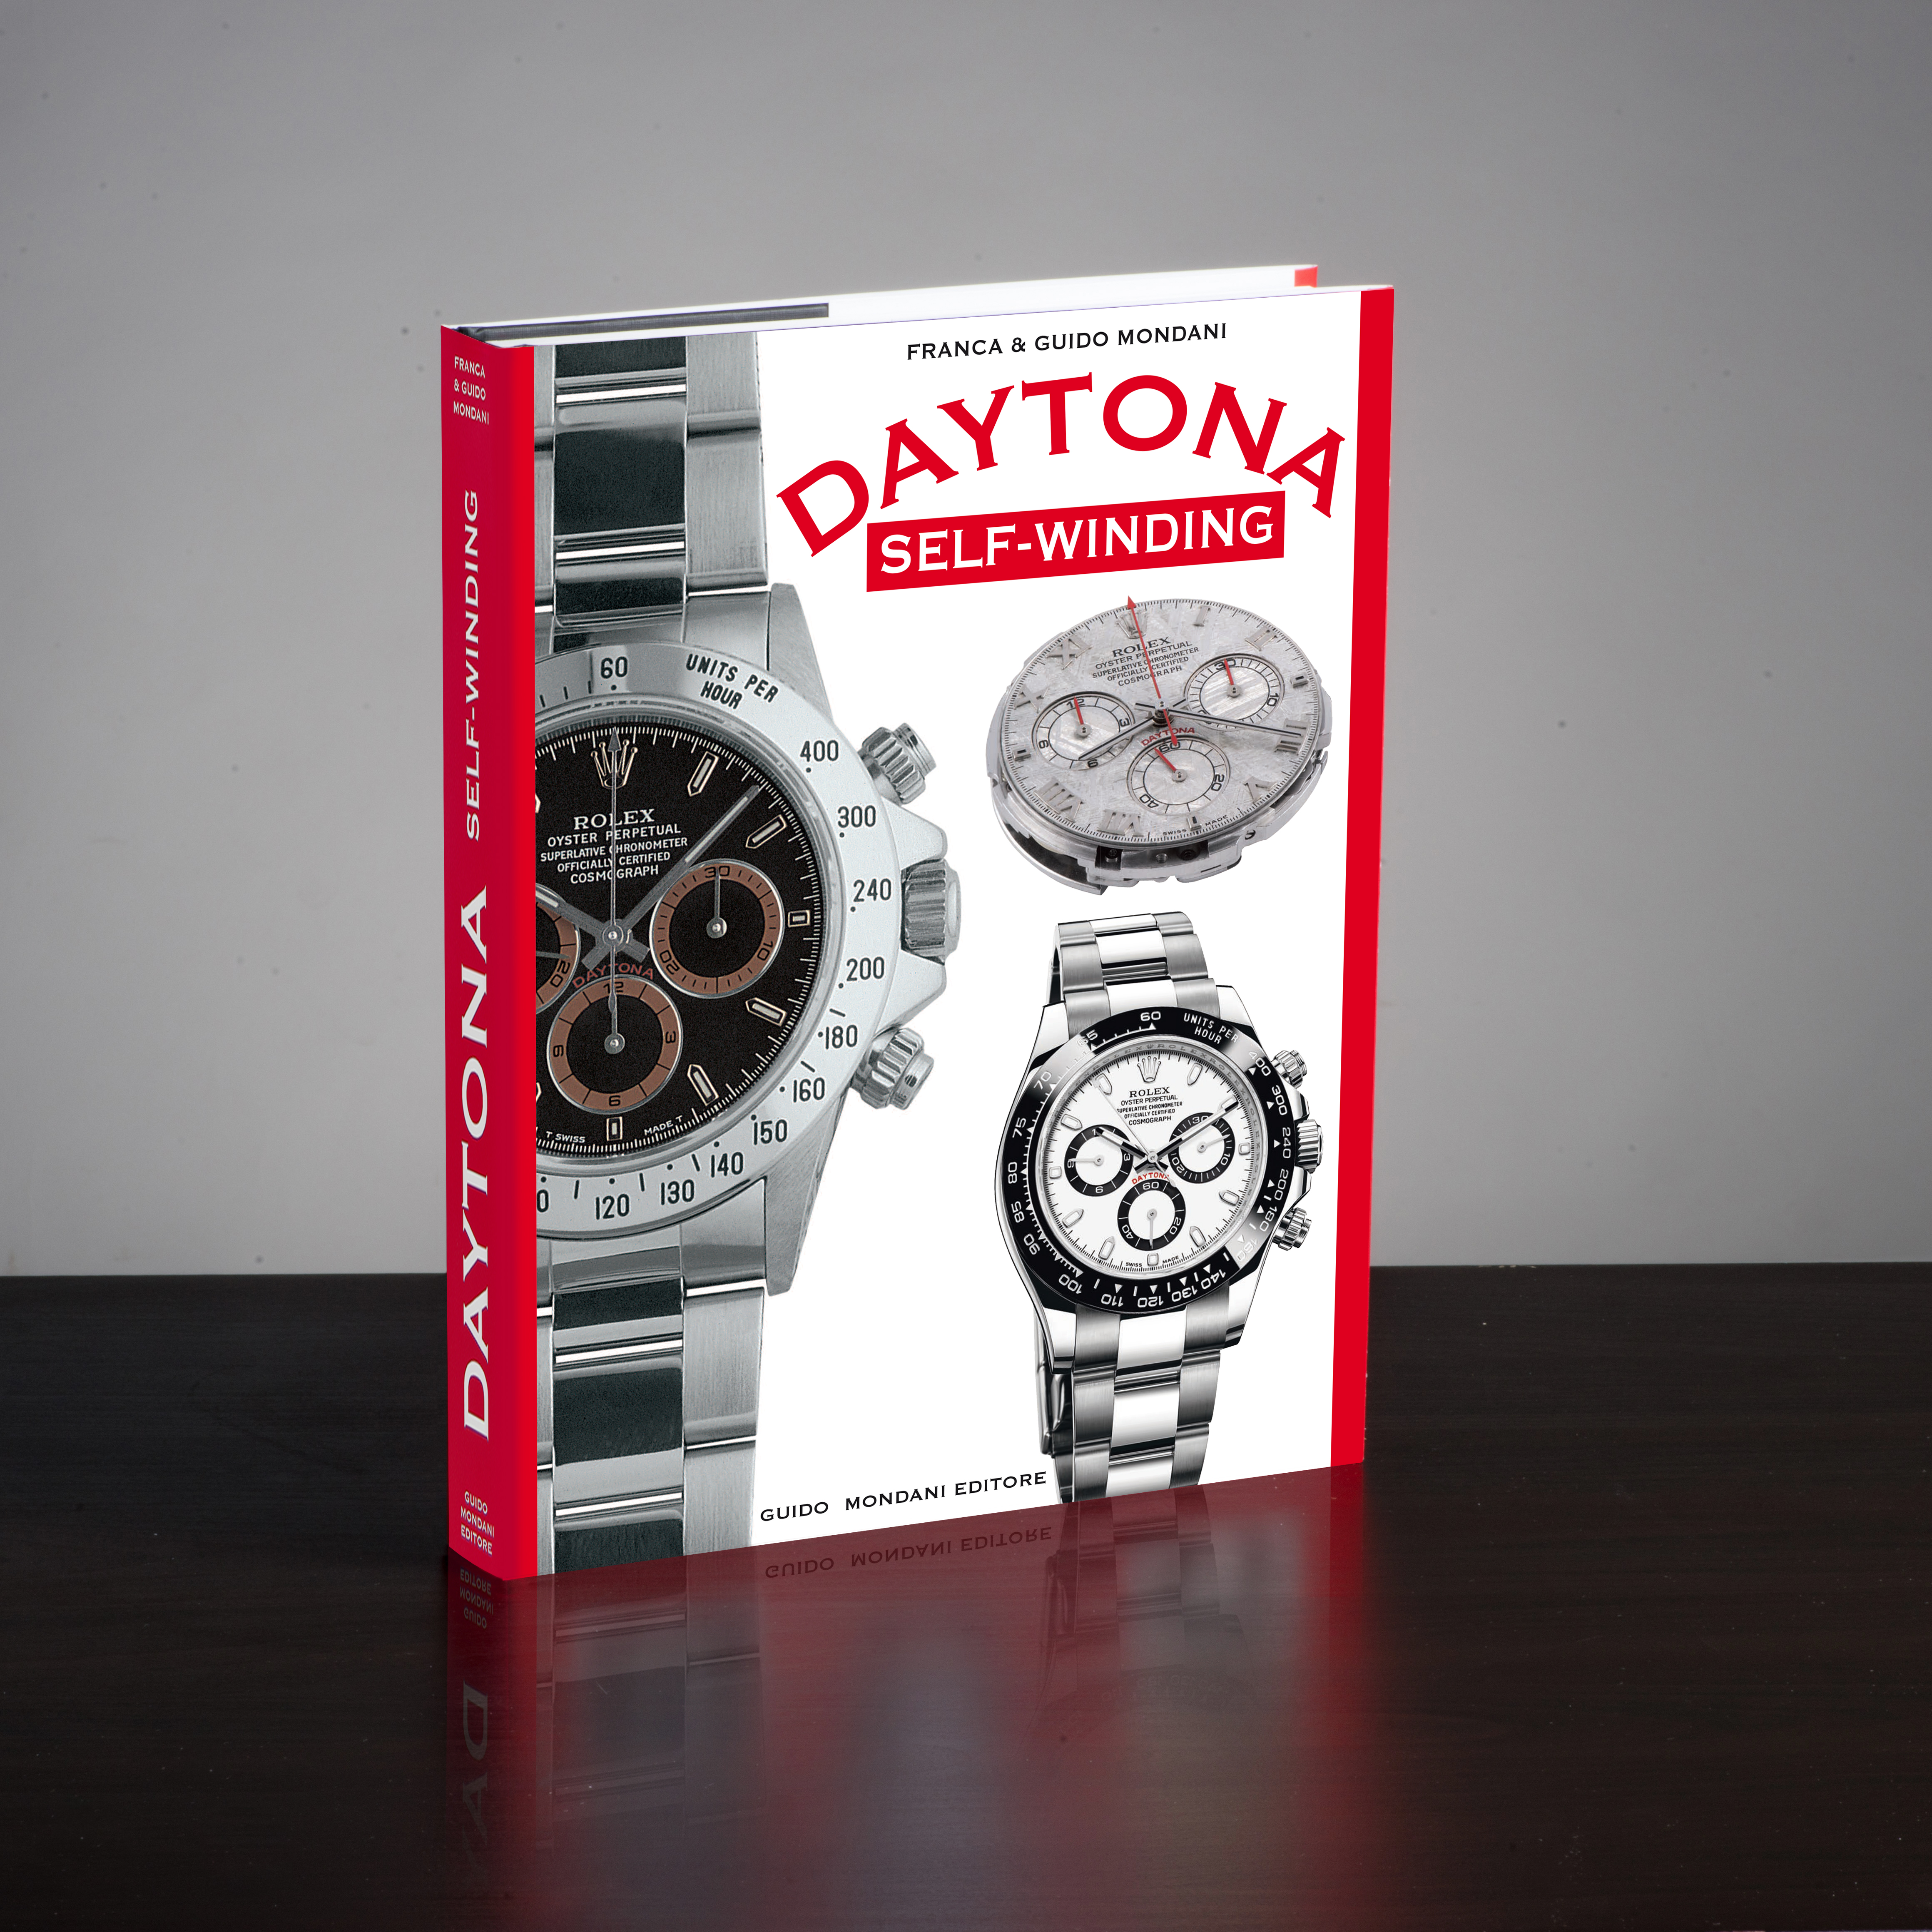 Rolex DAYTONA Self-Winding